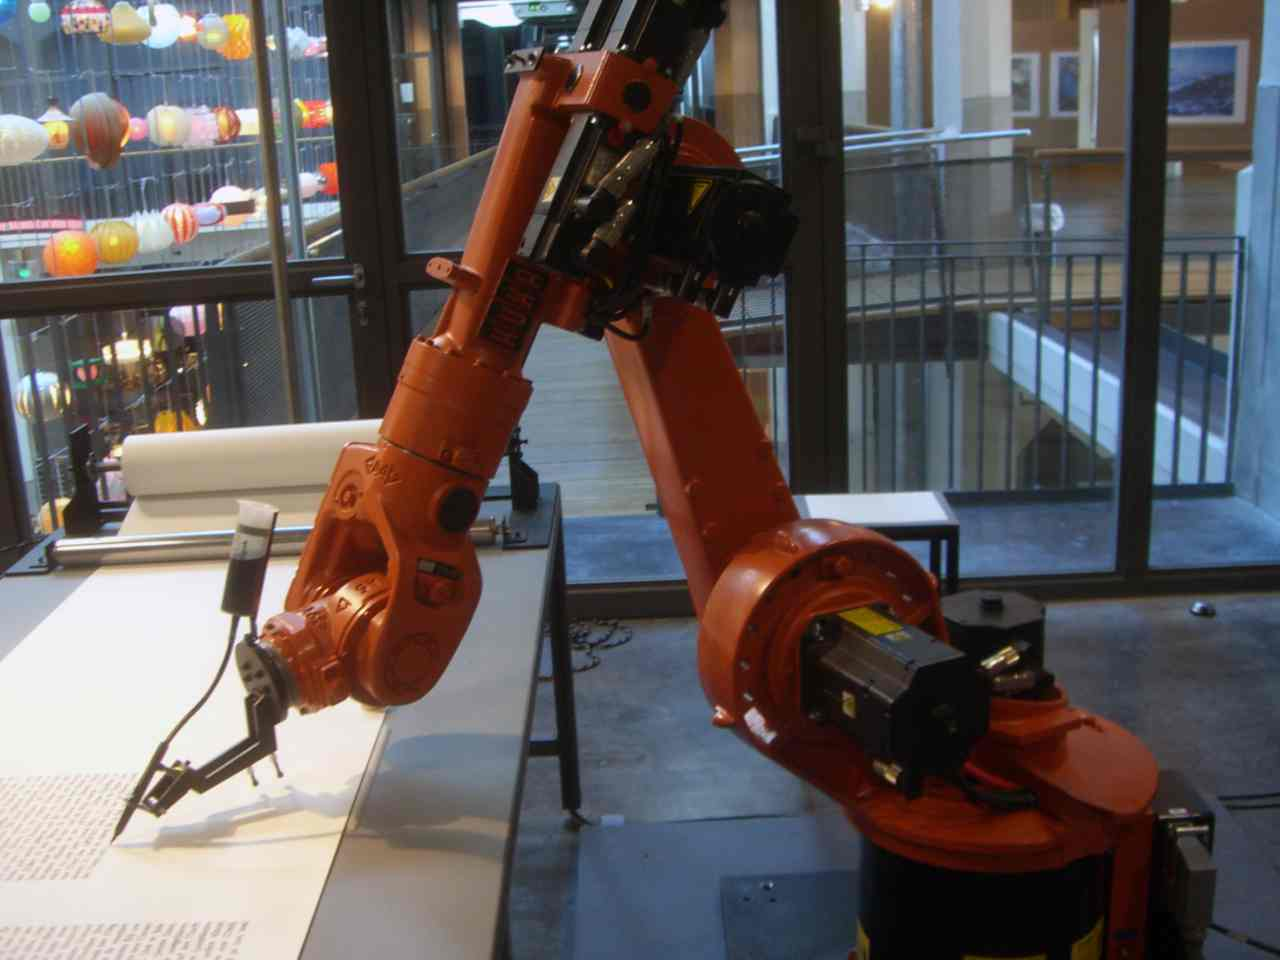 Journalists | With the advent of automation and algorithmic technology, Journalism will soon become robots' next venture. Since 2012, media giants have been deploying AI and other algorithmic progressions to convert data into narrative news texts with little to no human intervention. (Image: Wikimedia Commons)